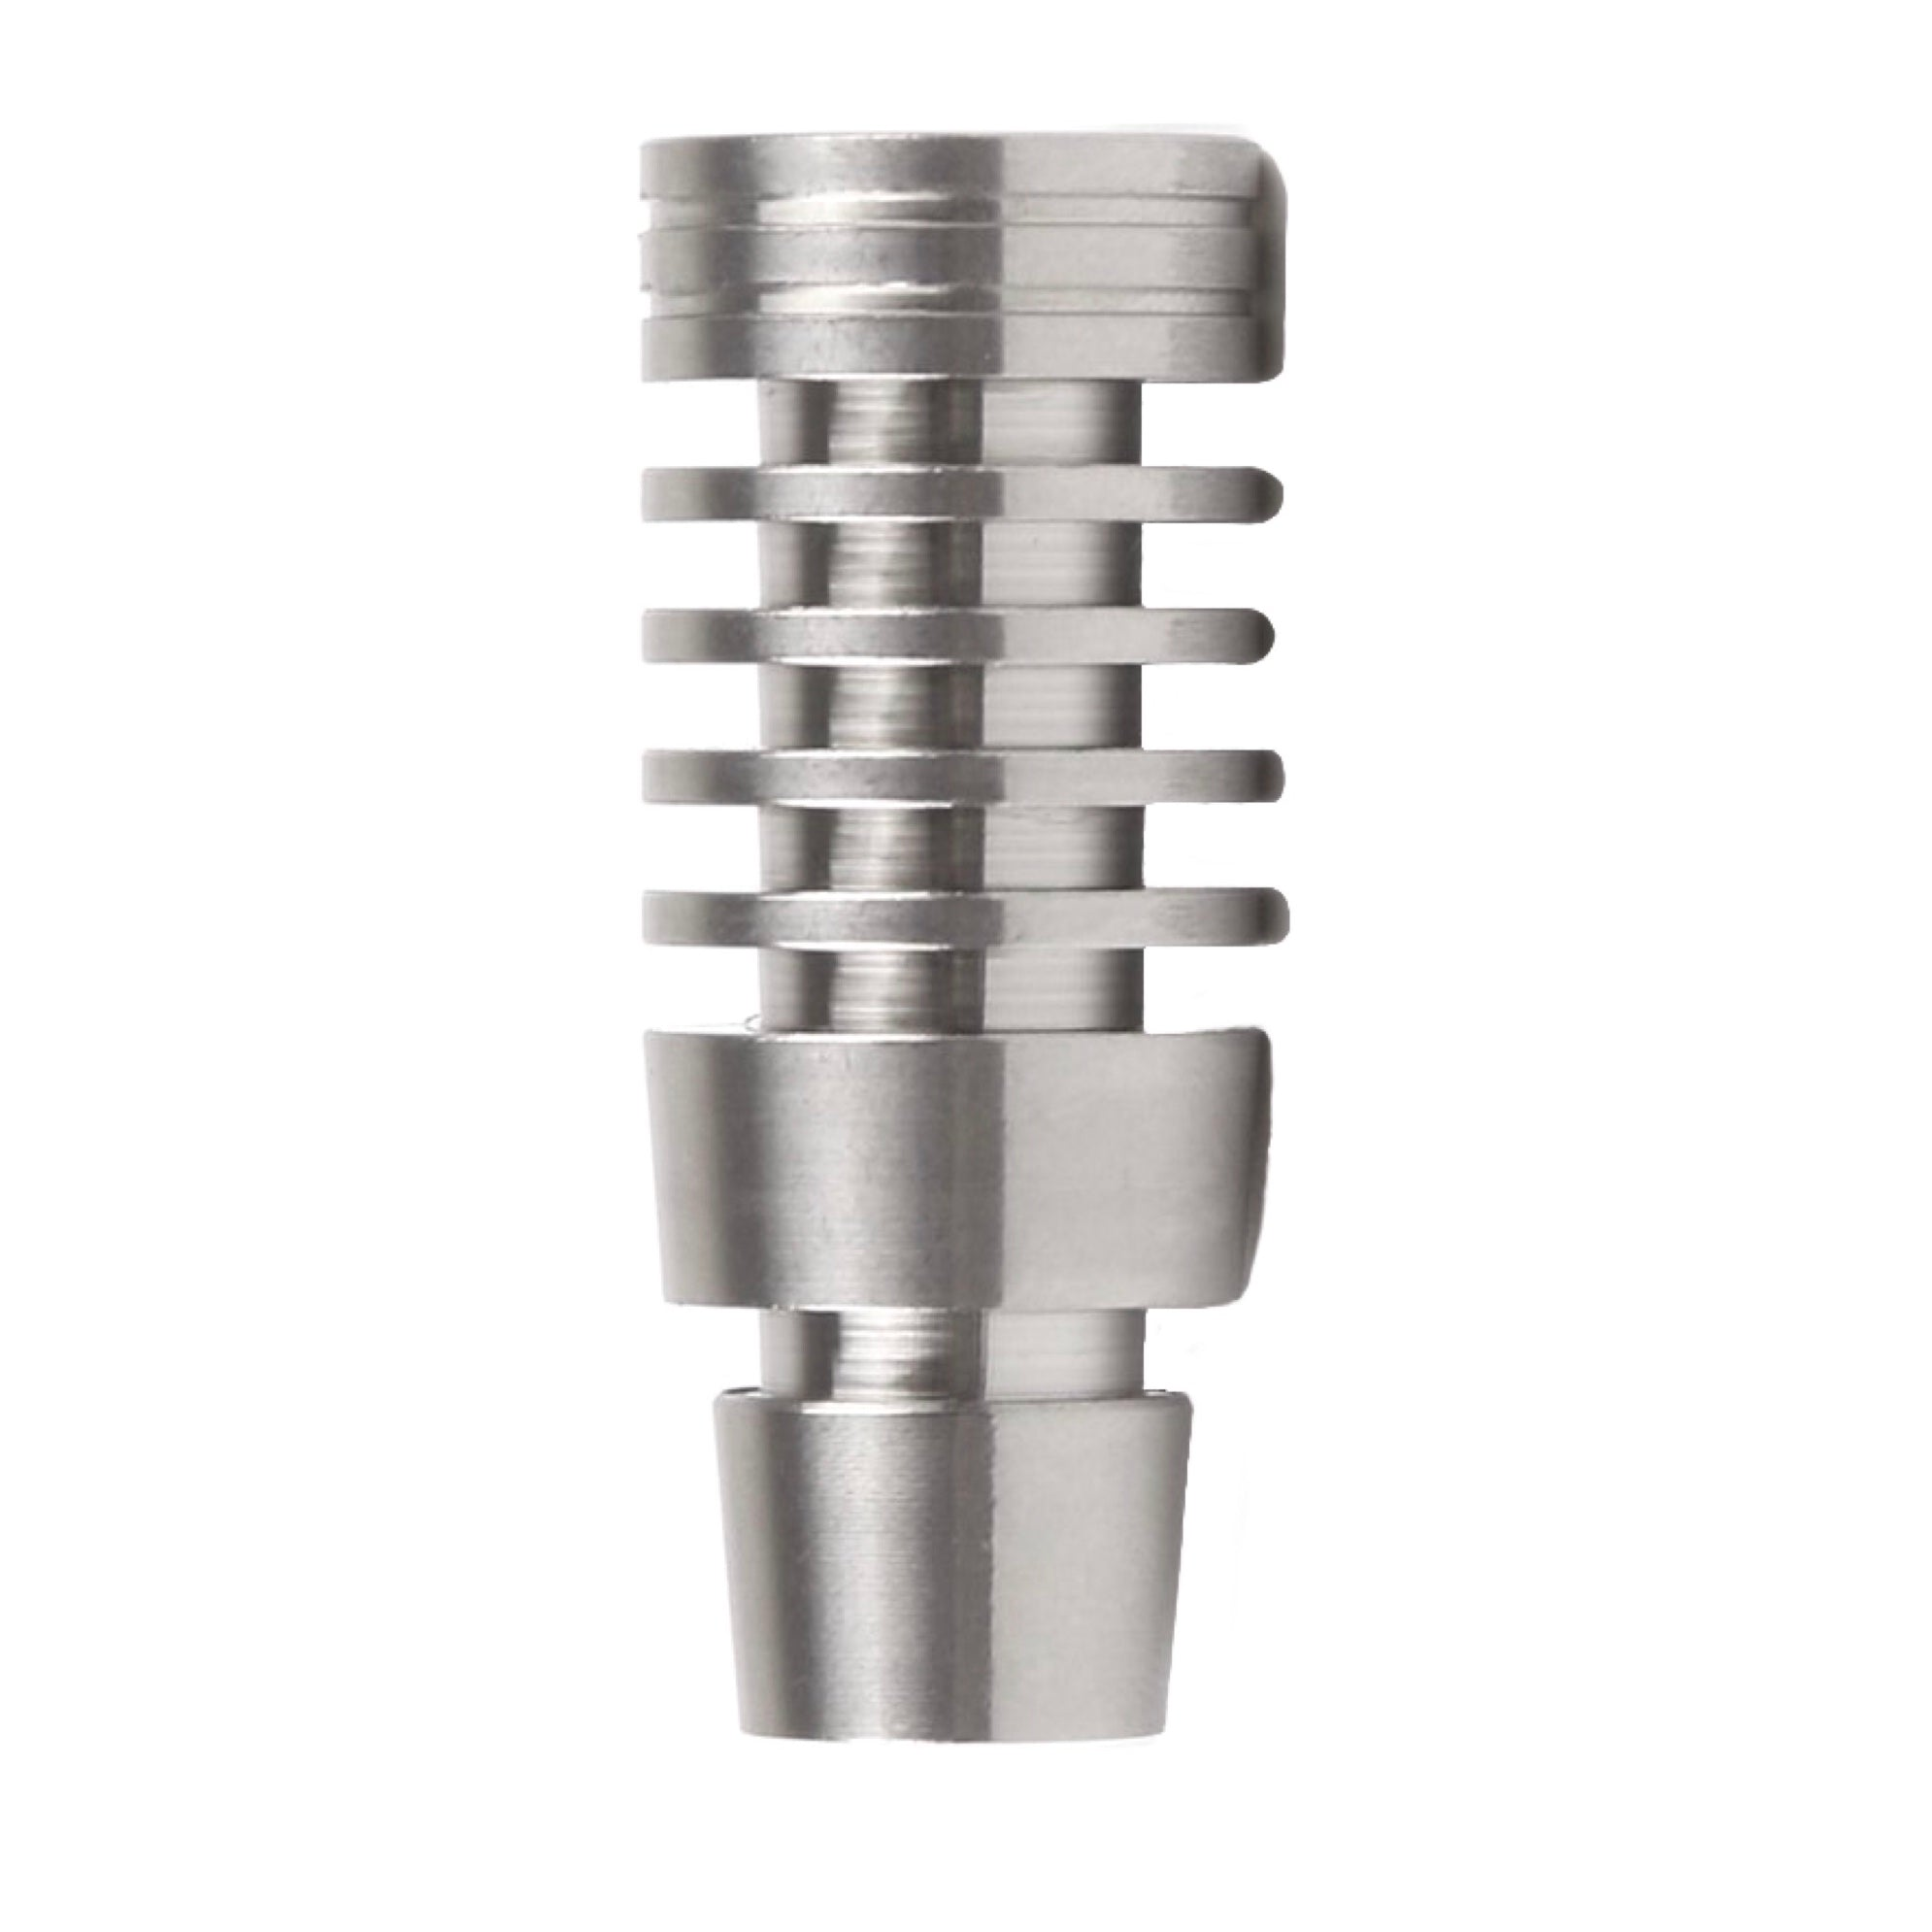 CaliConnected Domeless Male Titanium Nail for 14mm & 18mm Joints